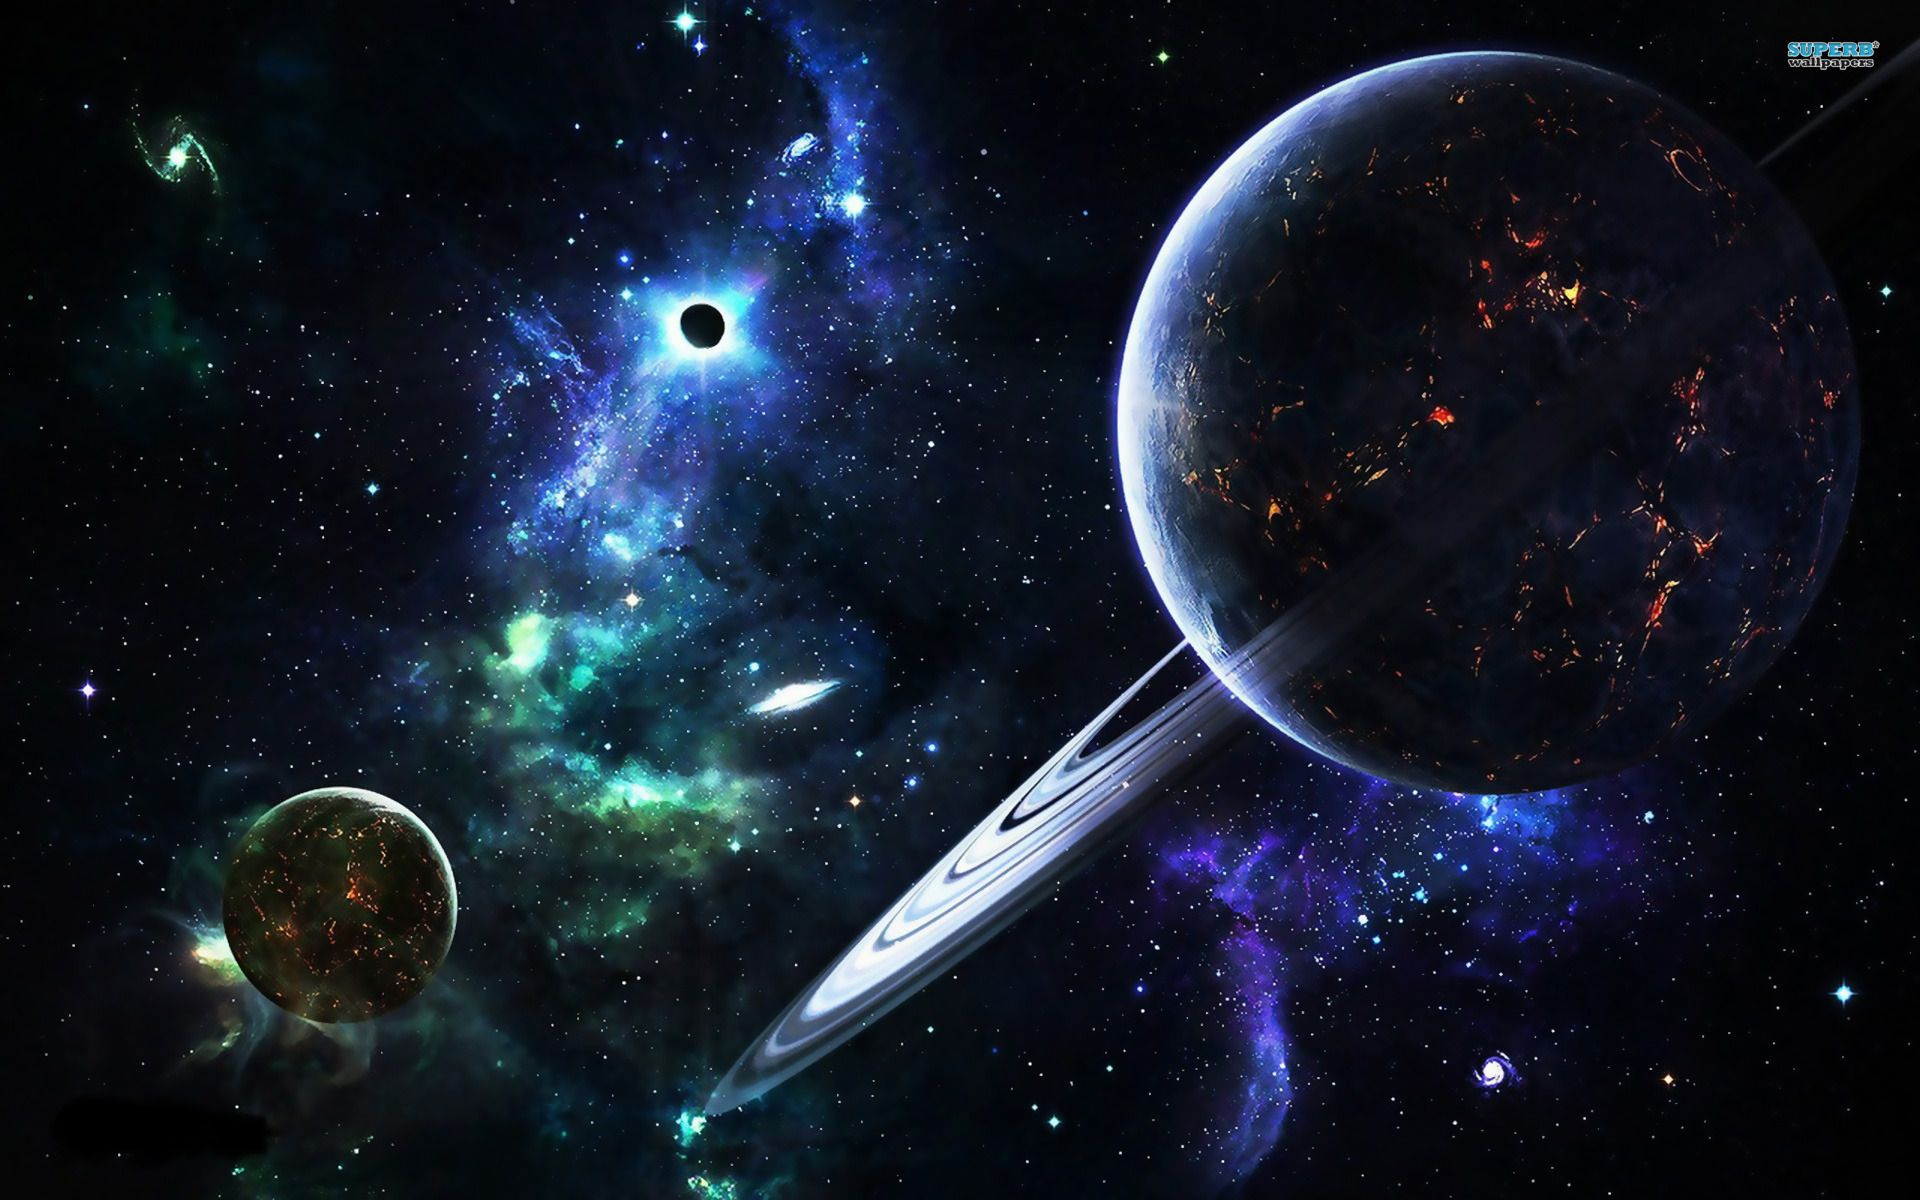 Cool Galaxy Wallpapers Google Search Space Art Wallpaper Wallpaper Space Outer Space Planets